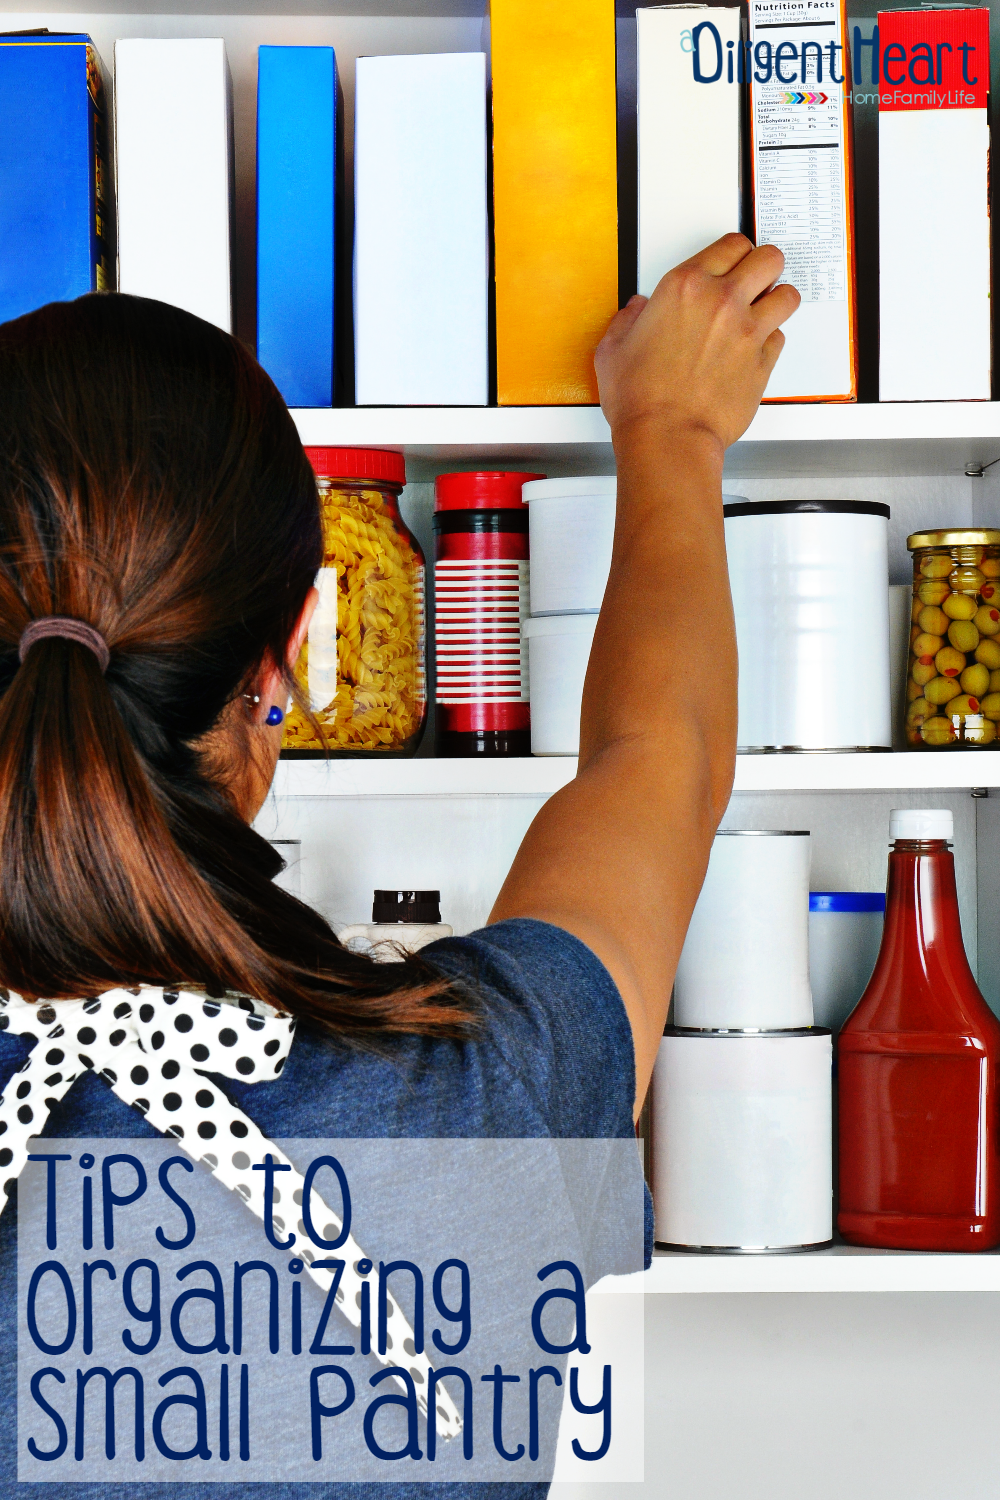 Have a small pantry in your home? Struggling with how to keep it organized, stocked, and keep tabs on everything you do have? Keep reading for some tips on how to do all of this in any small pantry.